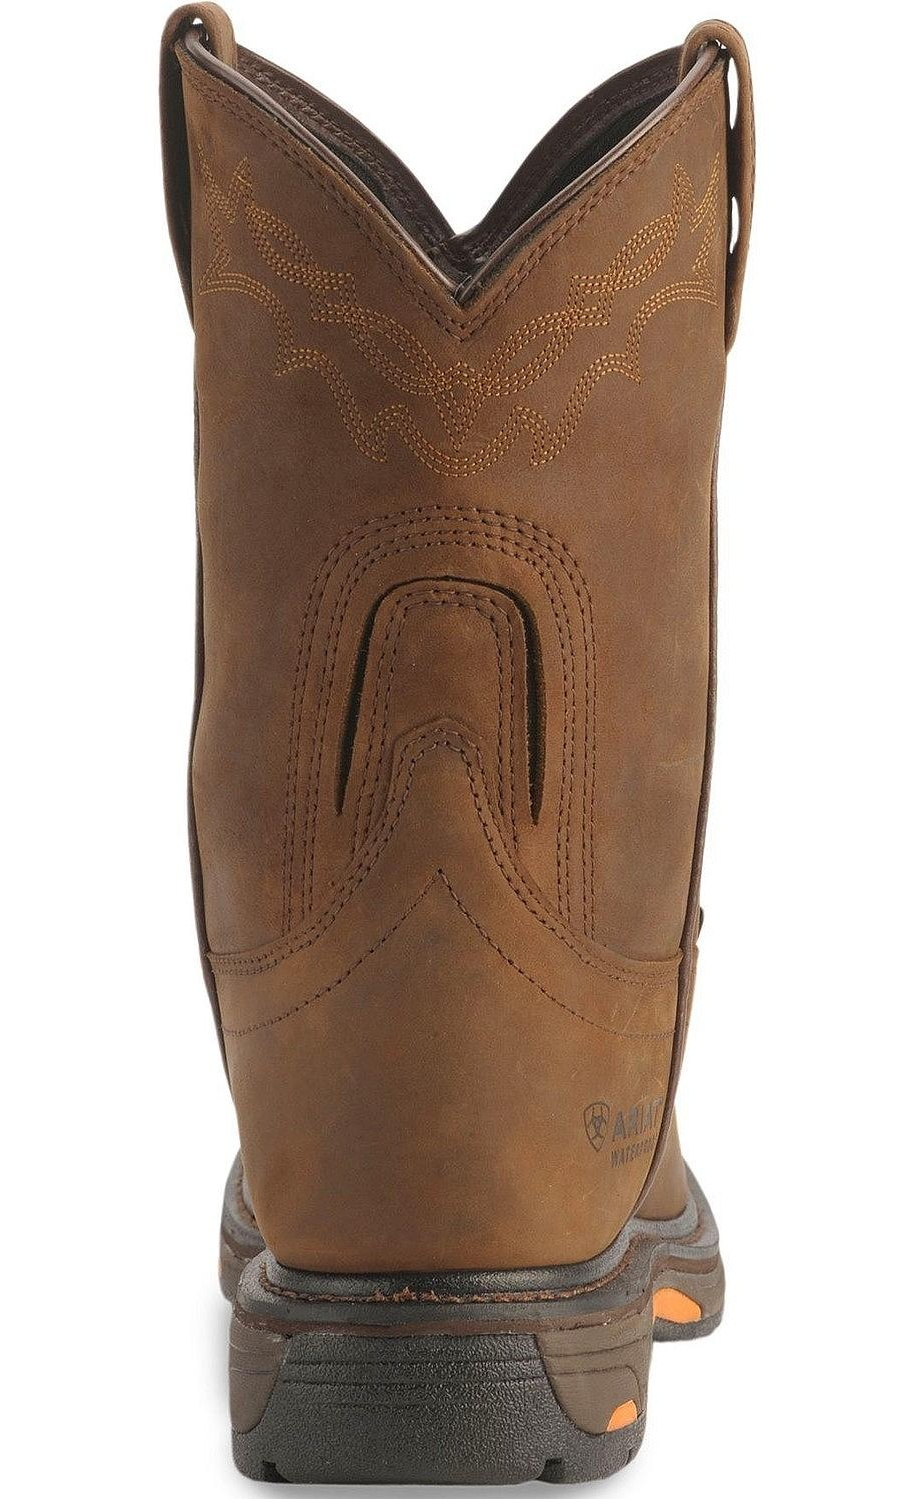 Ariat Men's H2o Workhog Western Work Boot Soft Toe - 10001198